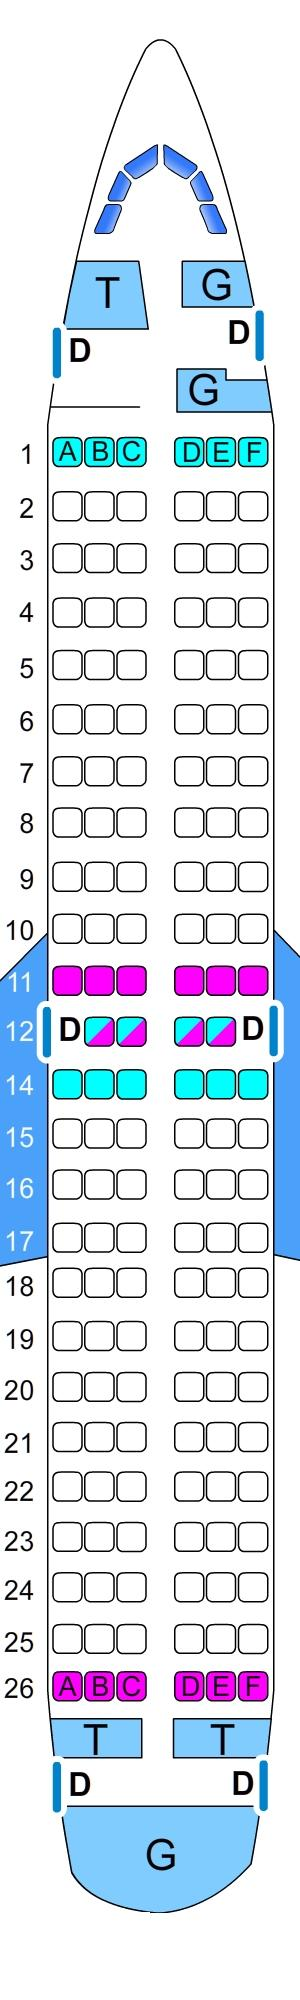 Seat map for SkyExpress Boeing B737 300